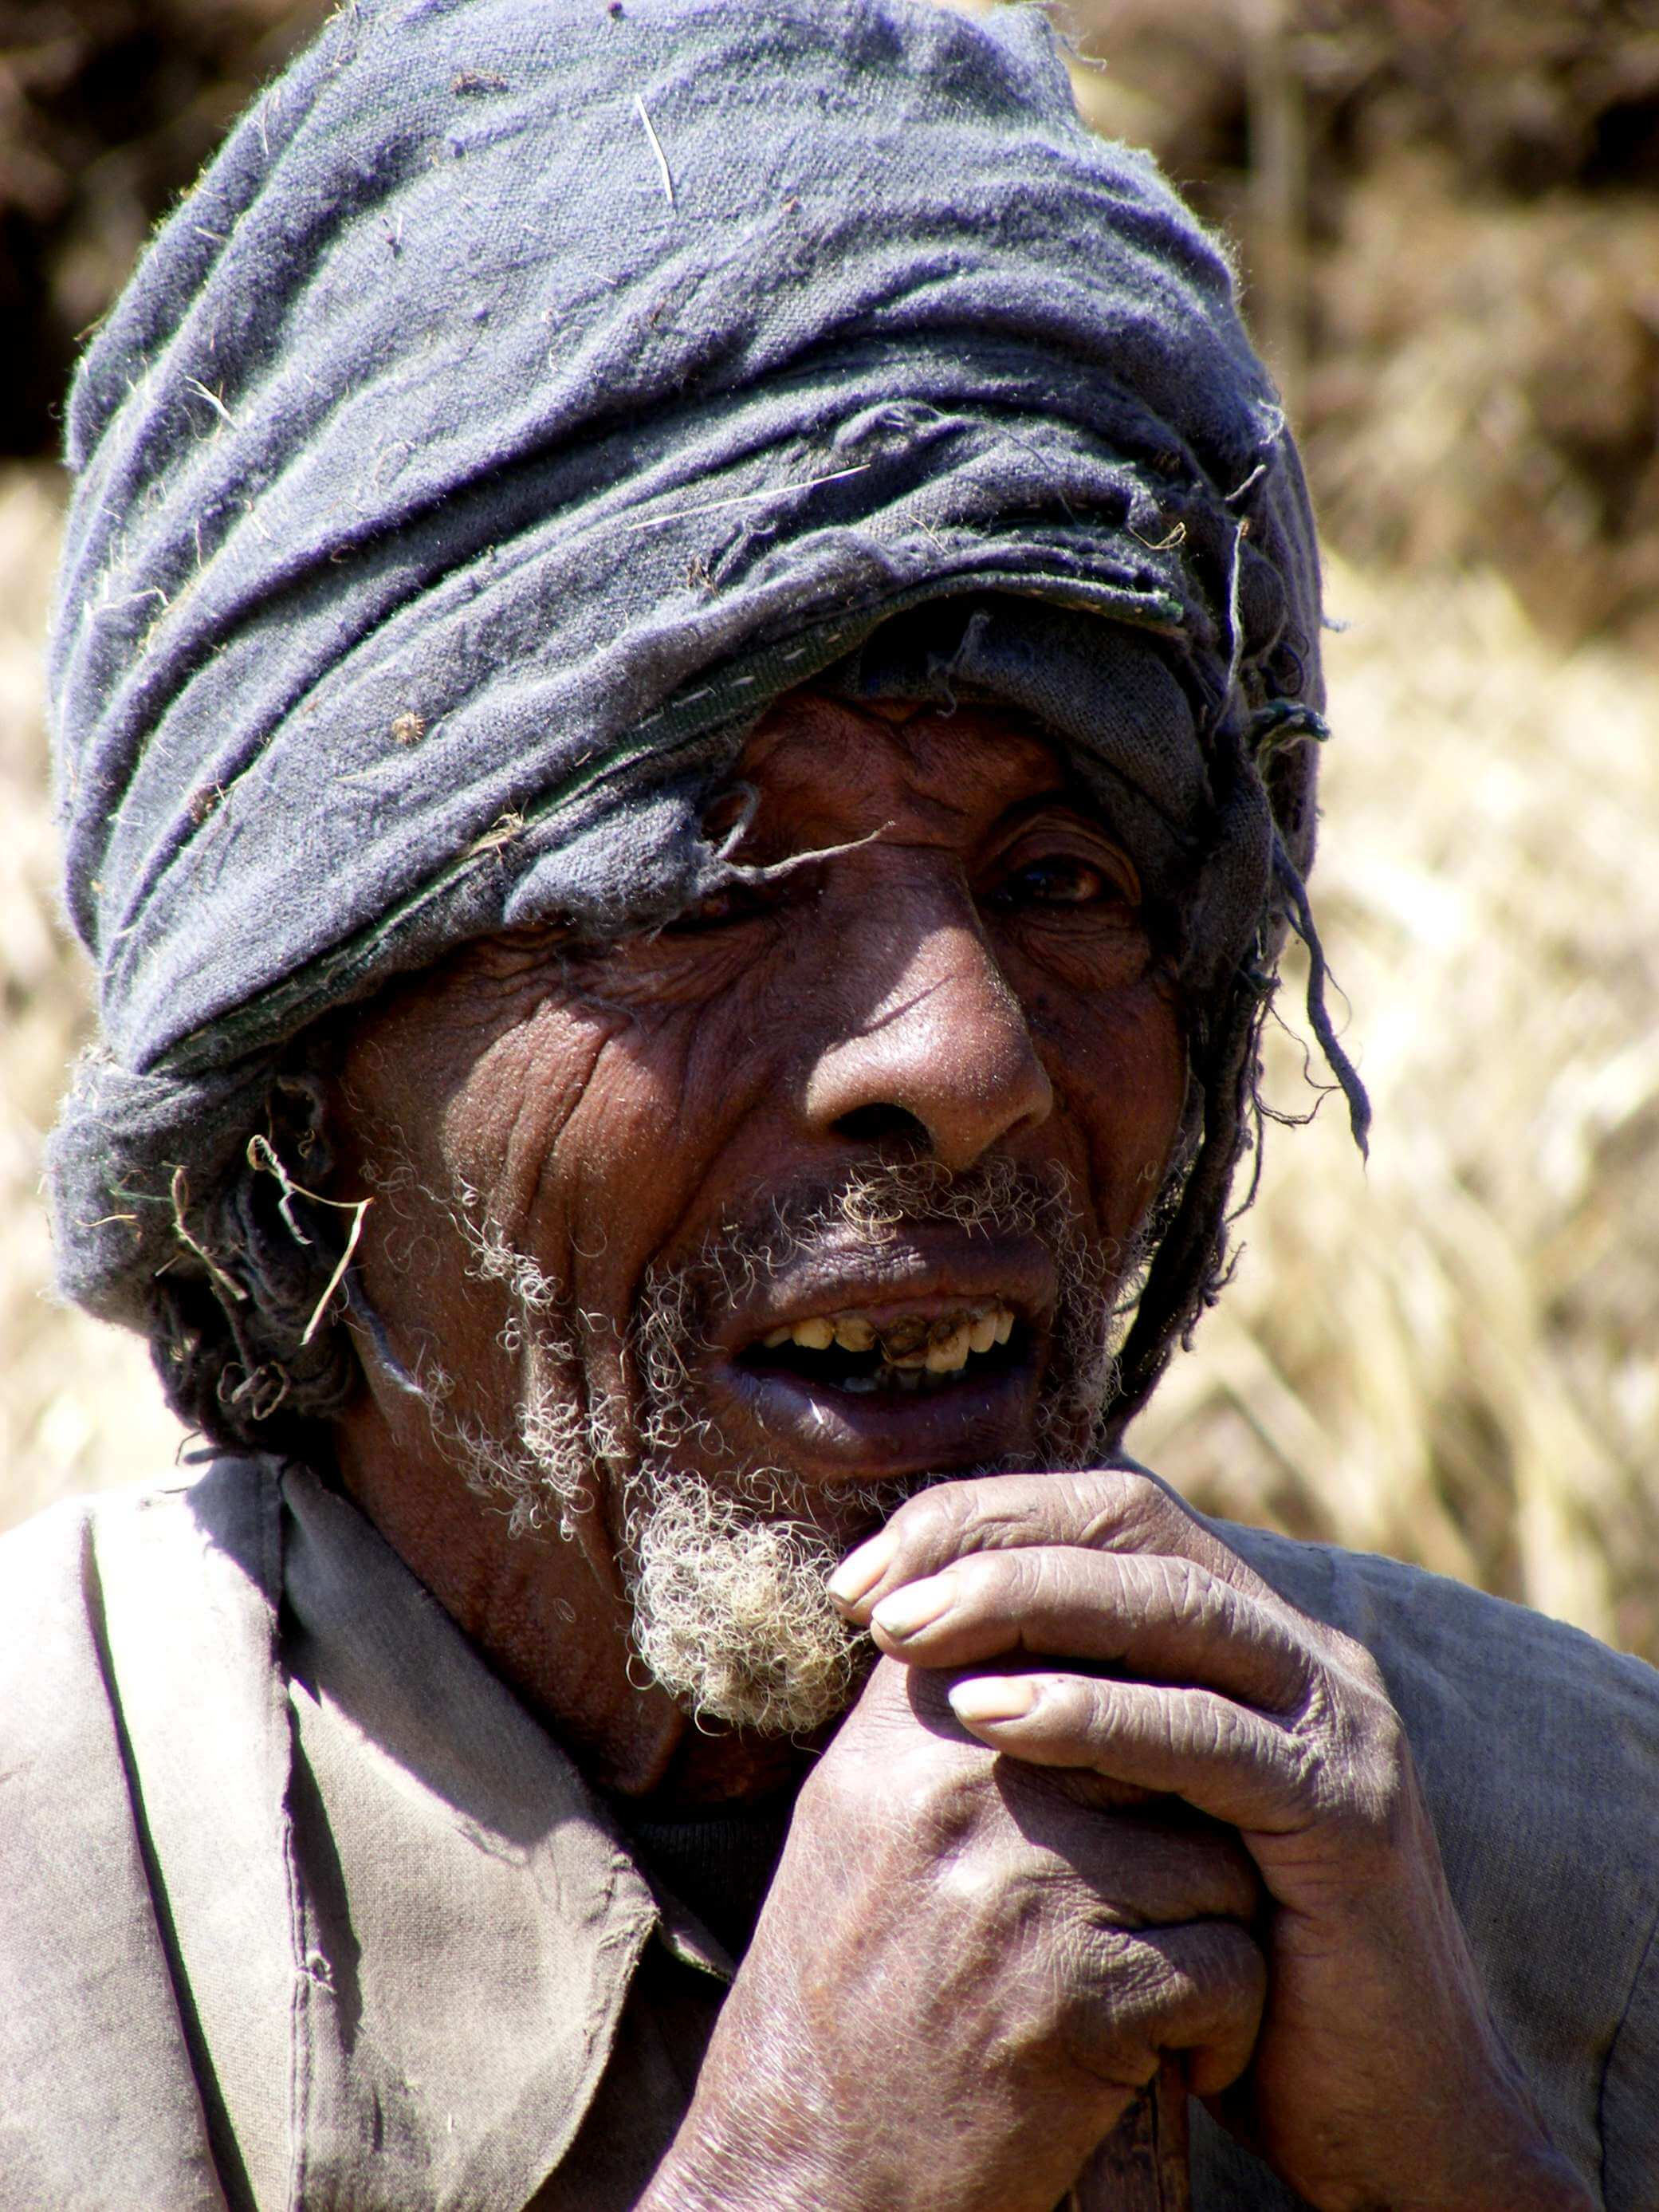 Ethiopia - an old man